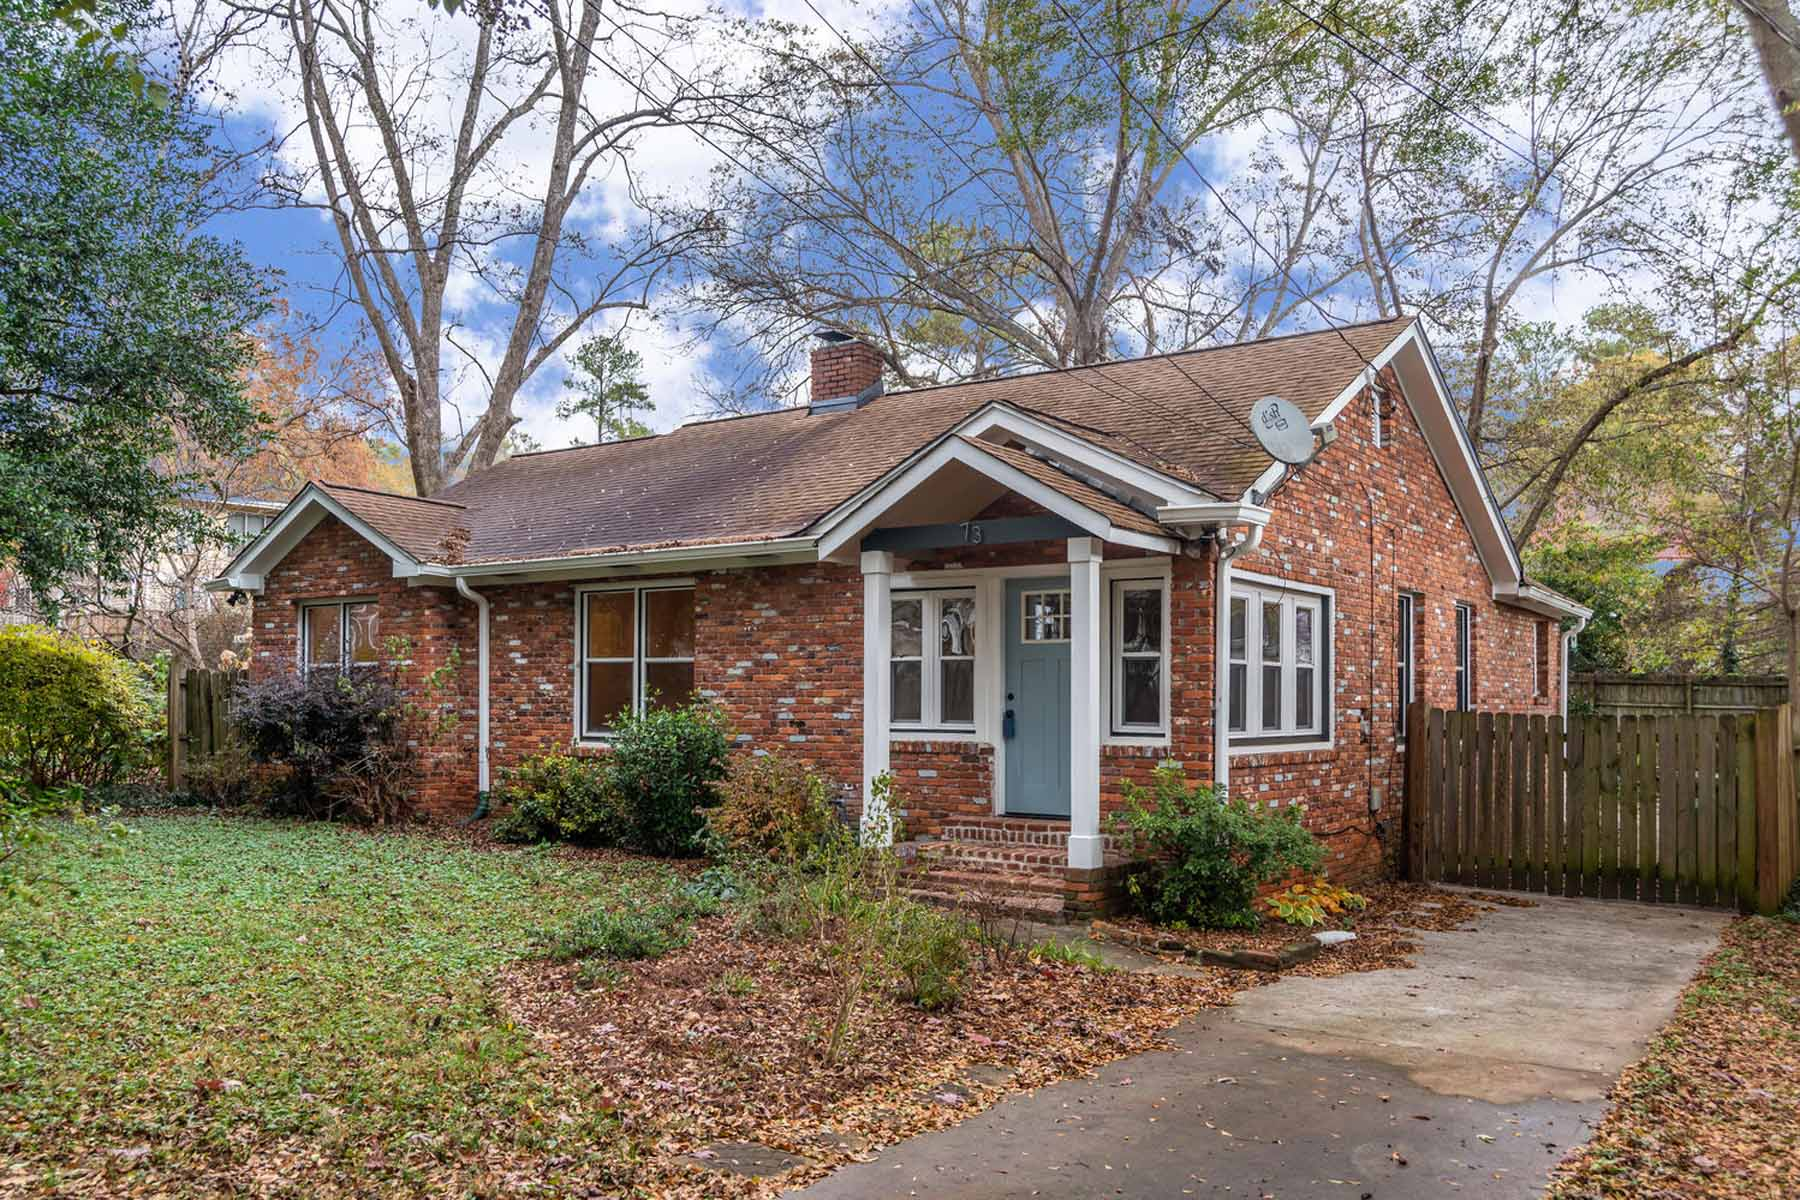 Single Family Home for Sale at Charming East Lake All Brick Ranch with Back Yard Made For Entertaining! 73 Daniel Ave Atlanta, Georgia 30317 United States